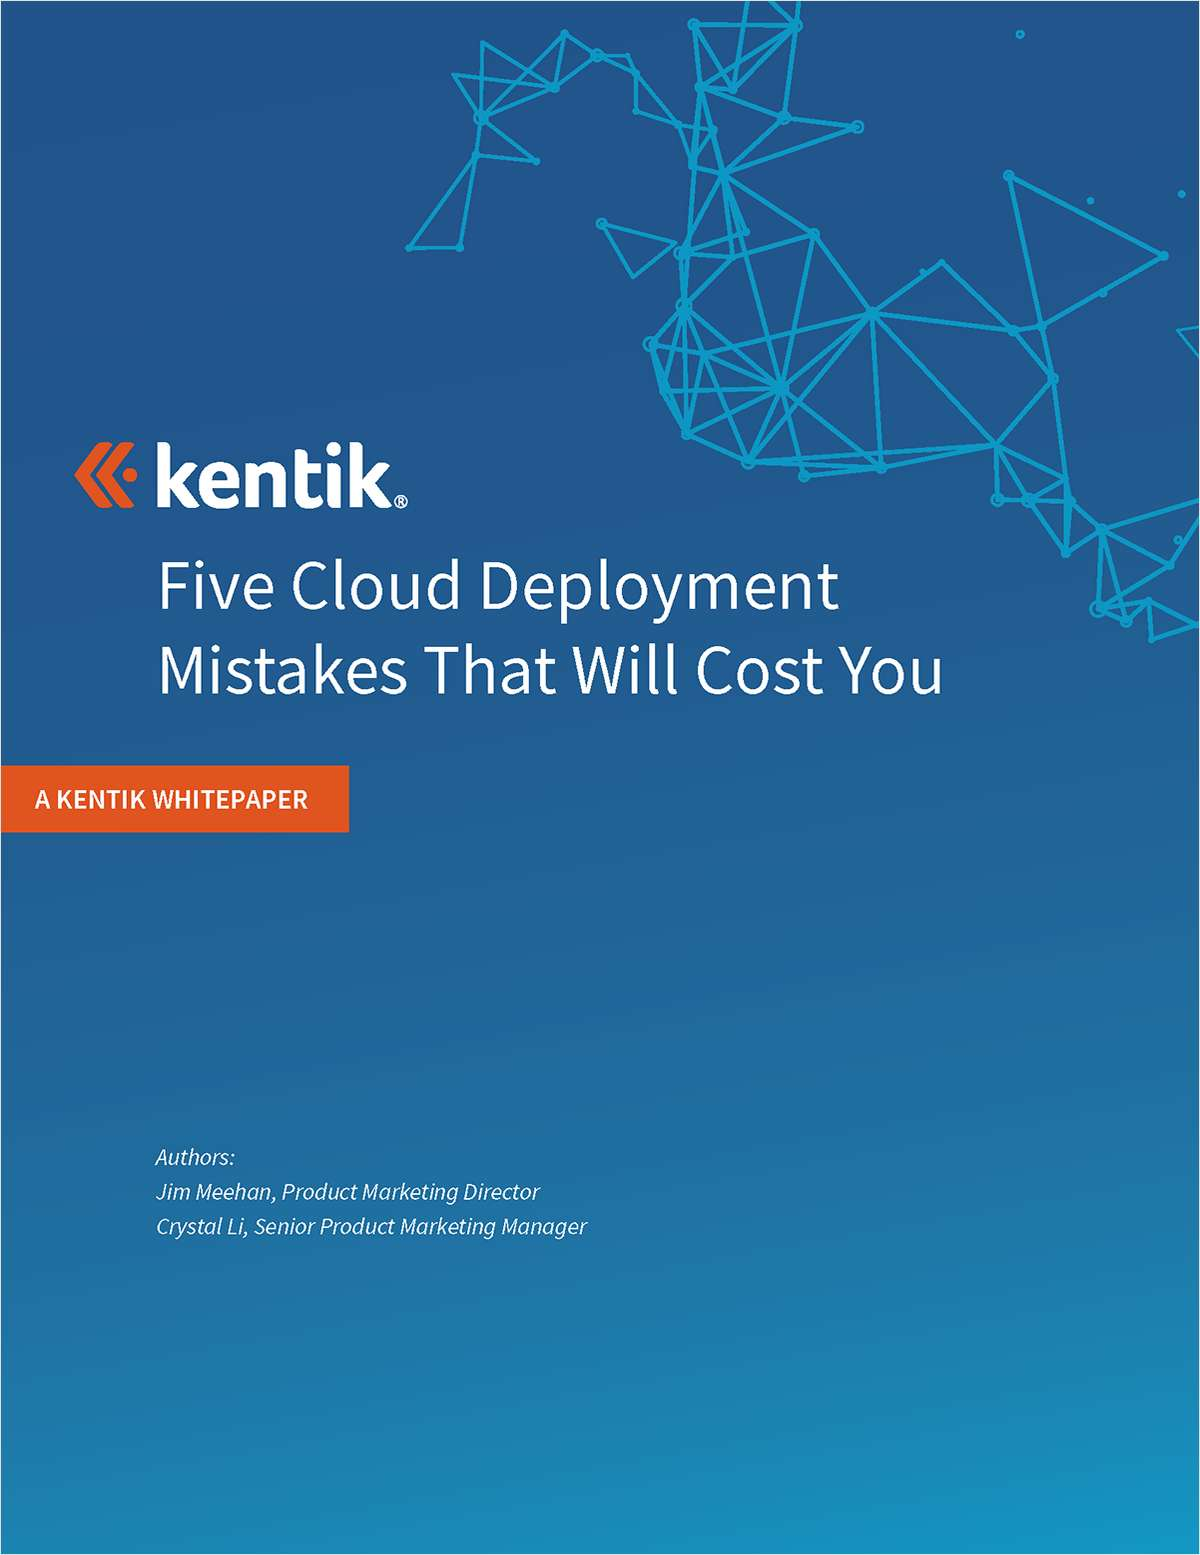 Five Cloud Deployment Mistakes that Will Cost You